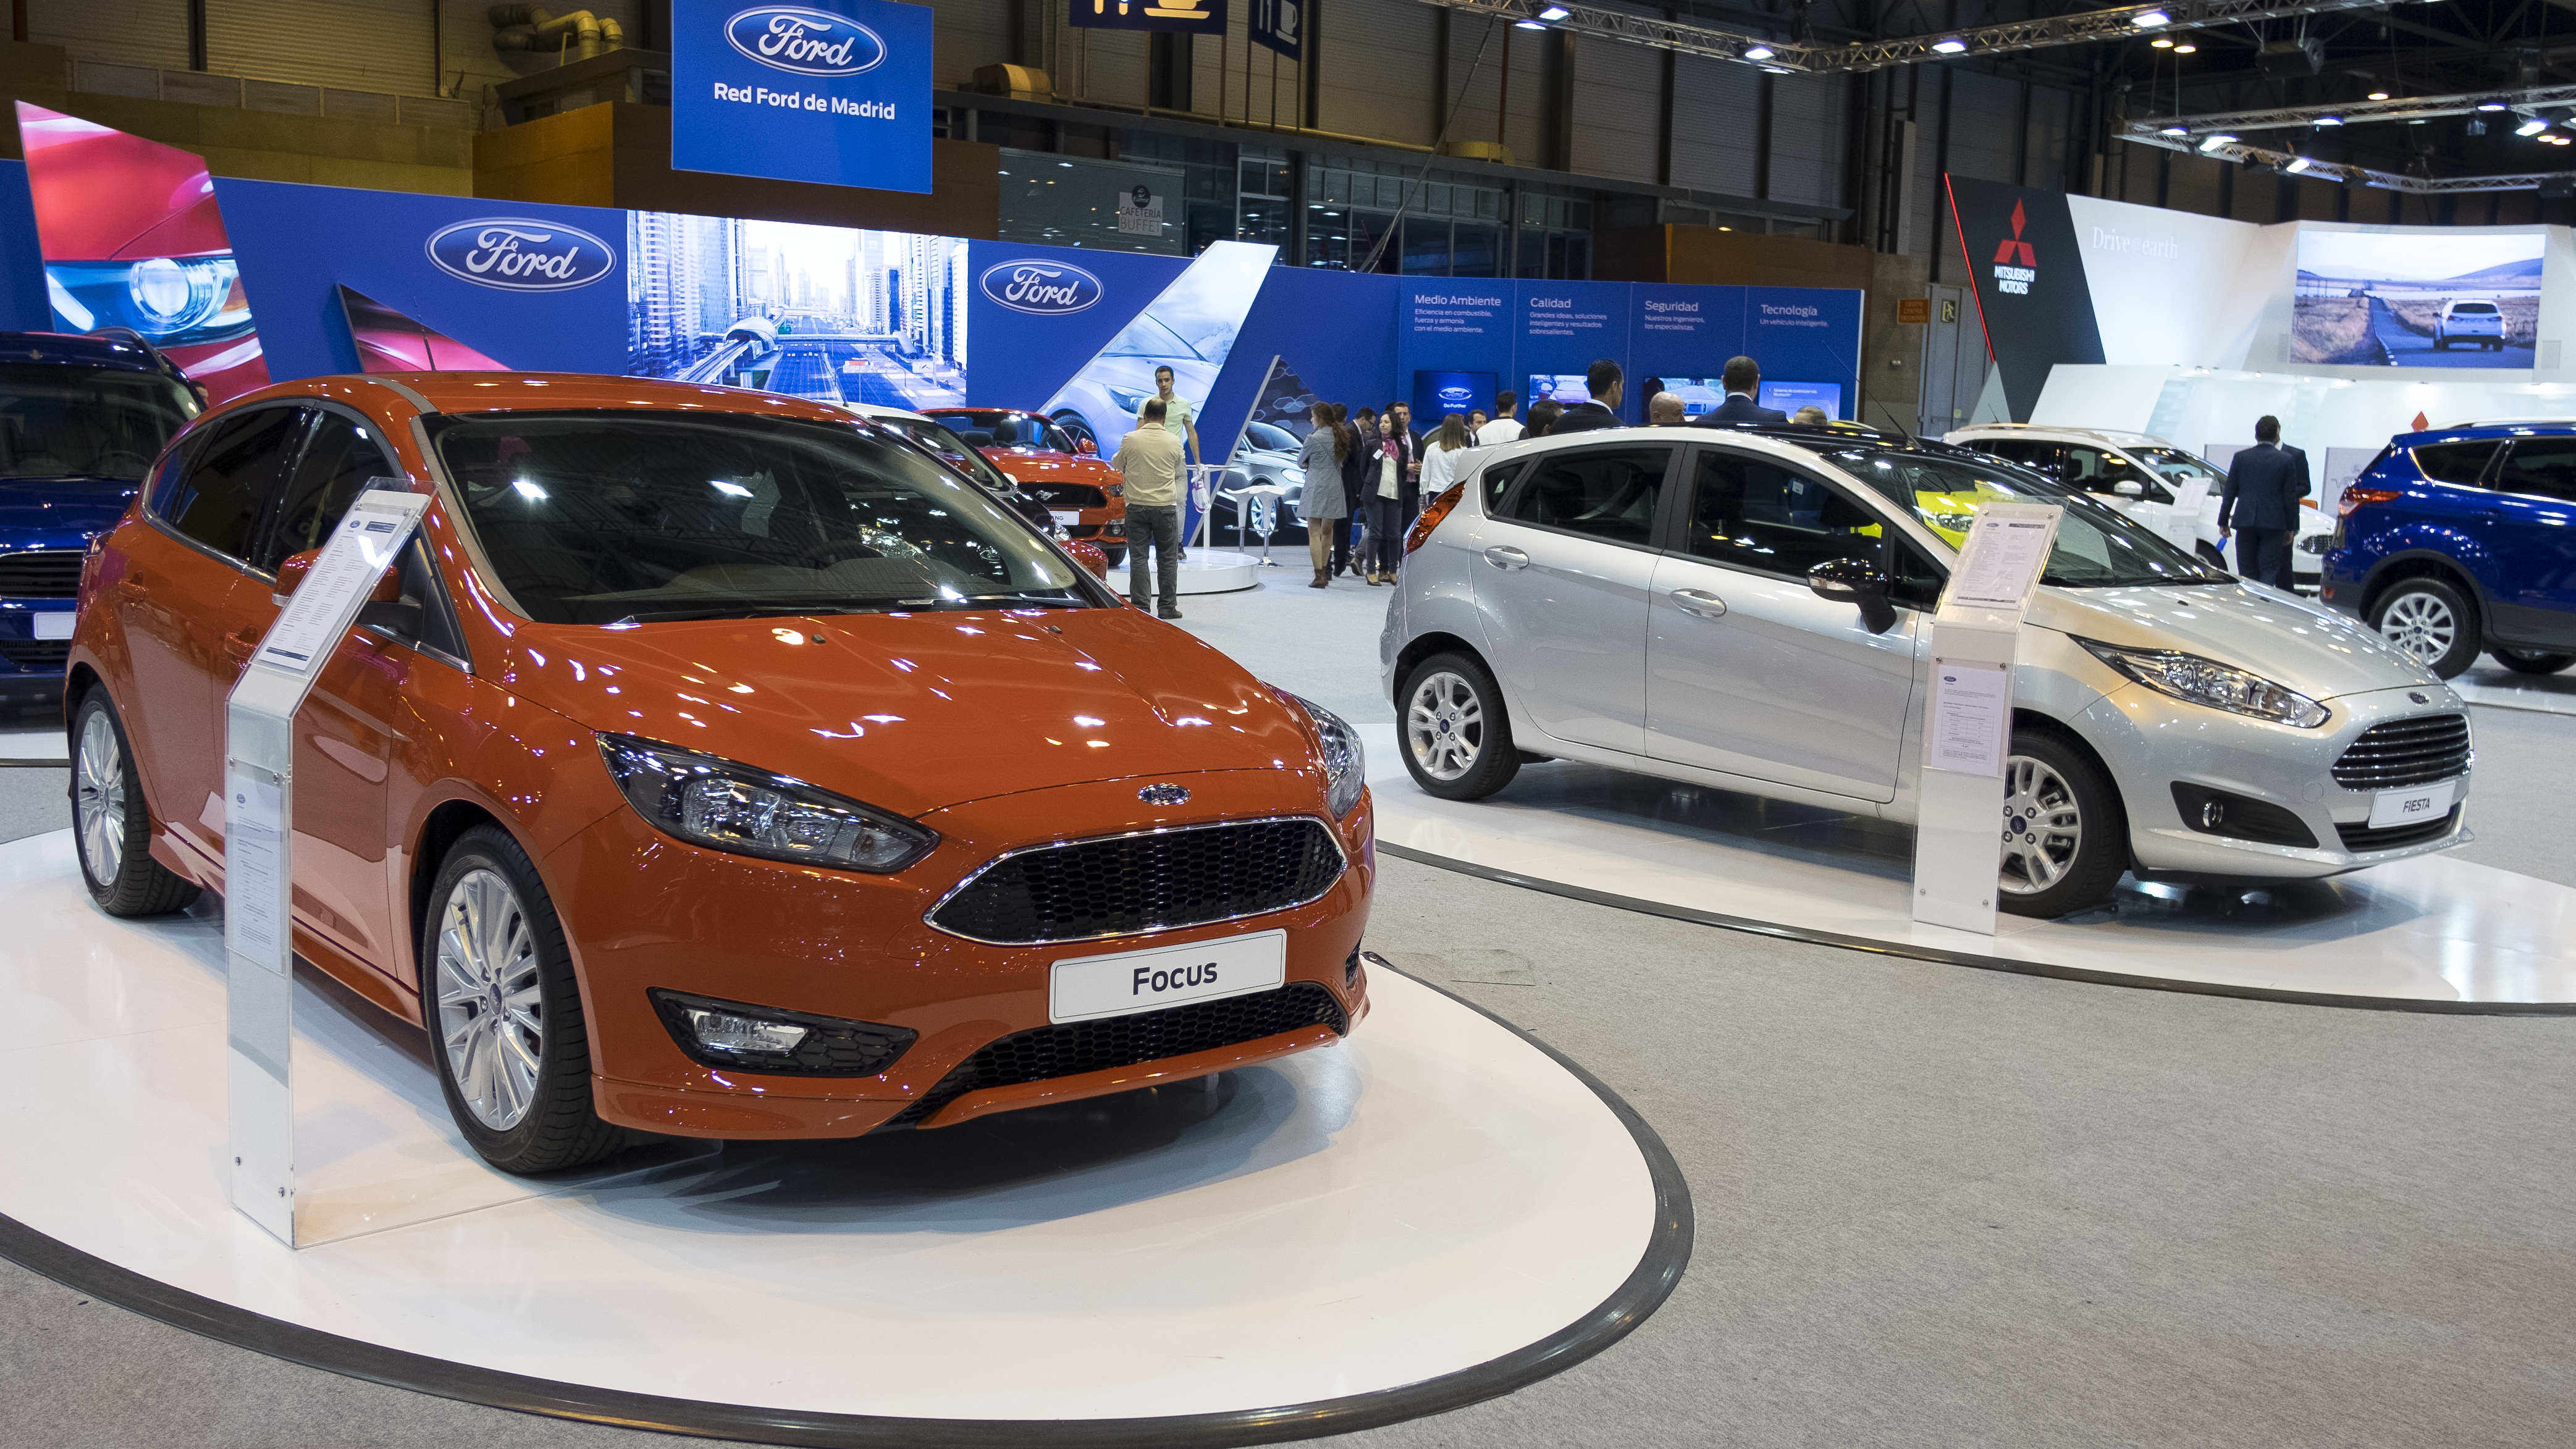 Ford Shifts Focus (Again) Car Will Be Imported To U.S. From China Not Mexico  The Two-Way  NPR & Ford Shifts Focus (Again): Car Will Be Imported To U.S. From China ... markmcfarlin.com